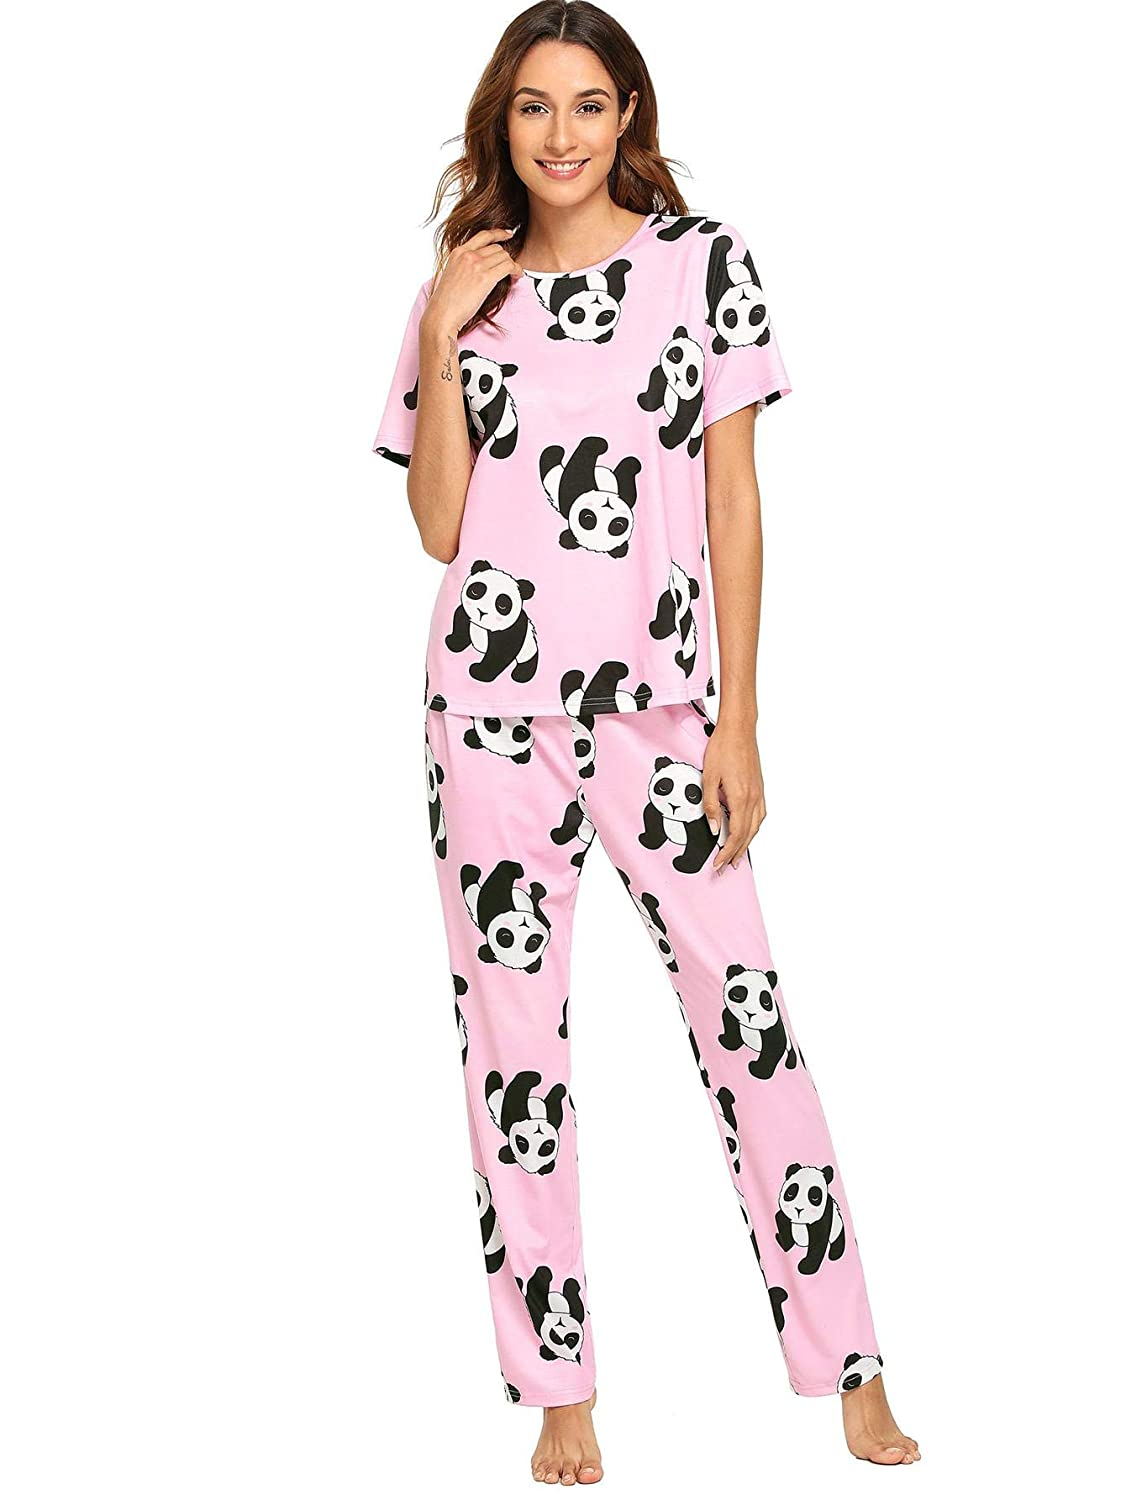 d0abb7440802 DIDK Women s Kitty Cat Print Tee and Polka Dot Pants Pajama Set at Amazon  Women s Clothing store